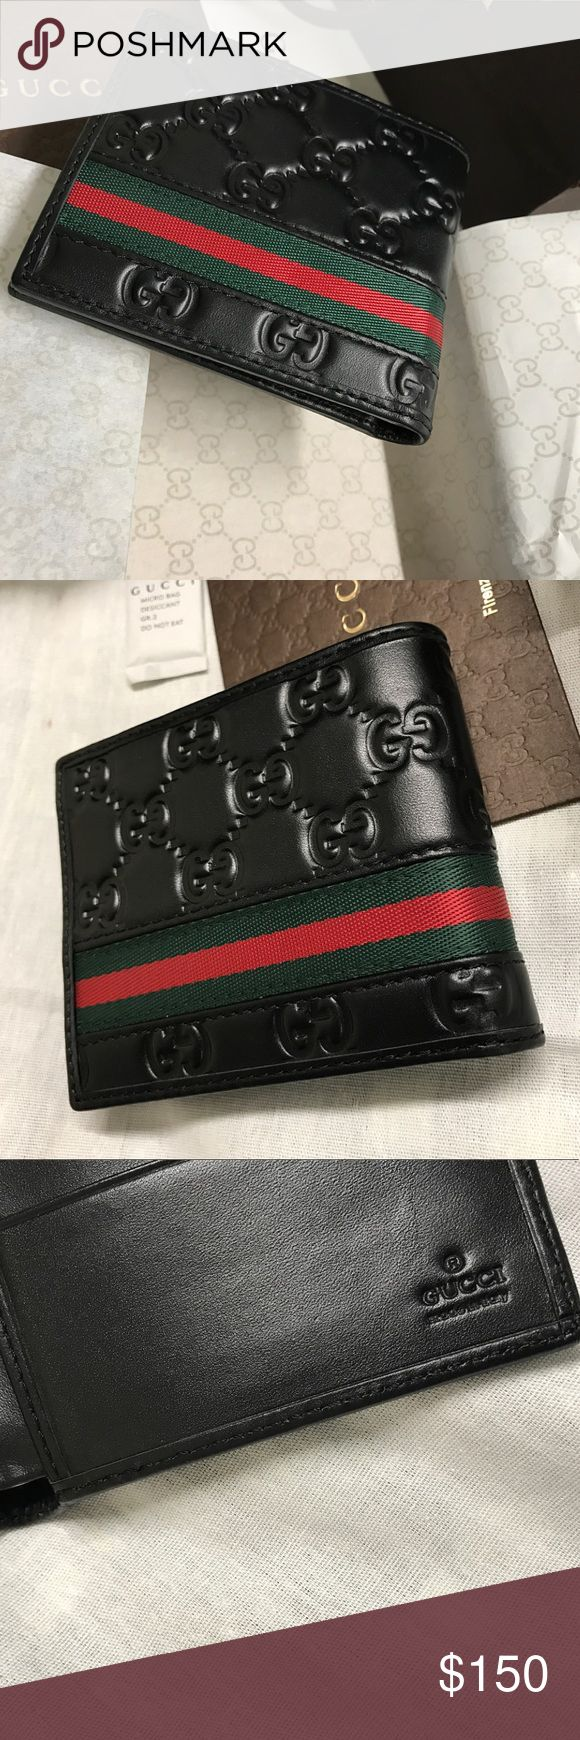 "Authentic Gucci signature web men's wallet This bi-fold wallet is made in heat debossed Gucci Signature with Gucci Web stripe detail.  Hand-painted edges Black Gucci Signature leather, heat debossed for a defined print and firm texture, with black leather trims Green and red Web Three card slots and two bill compartments Open: 8.5""W x 3.5""H Closed: 4.5""W x 3.5""H x .5""D Any questions please email me at Thebeltguy1@gmail.com Gucci Accessories Money Clips"